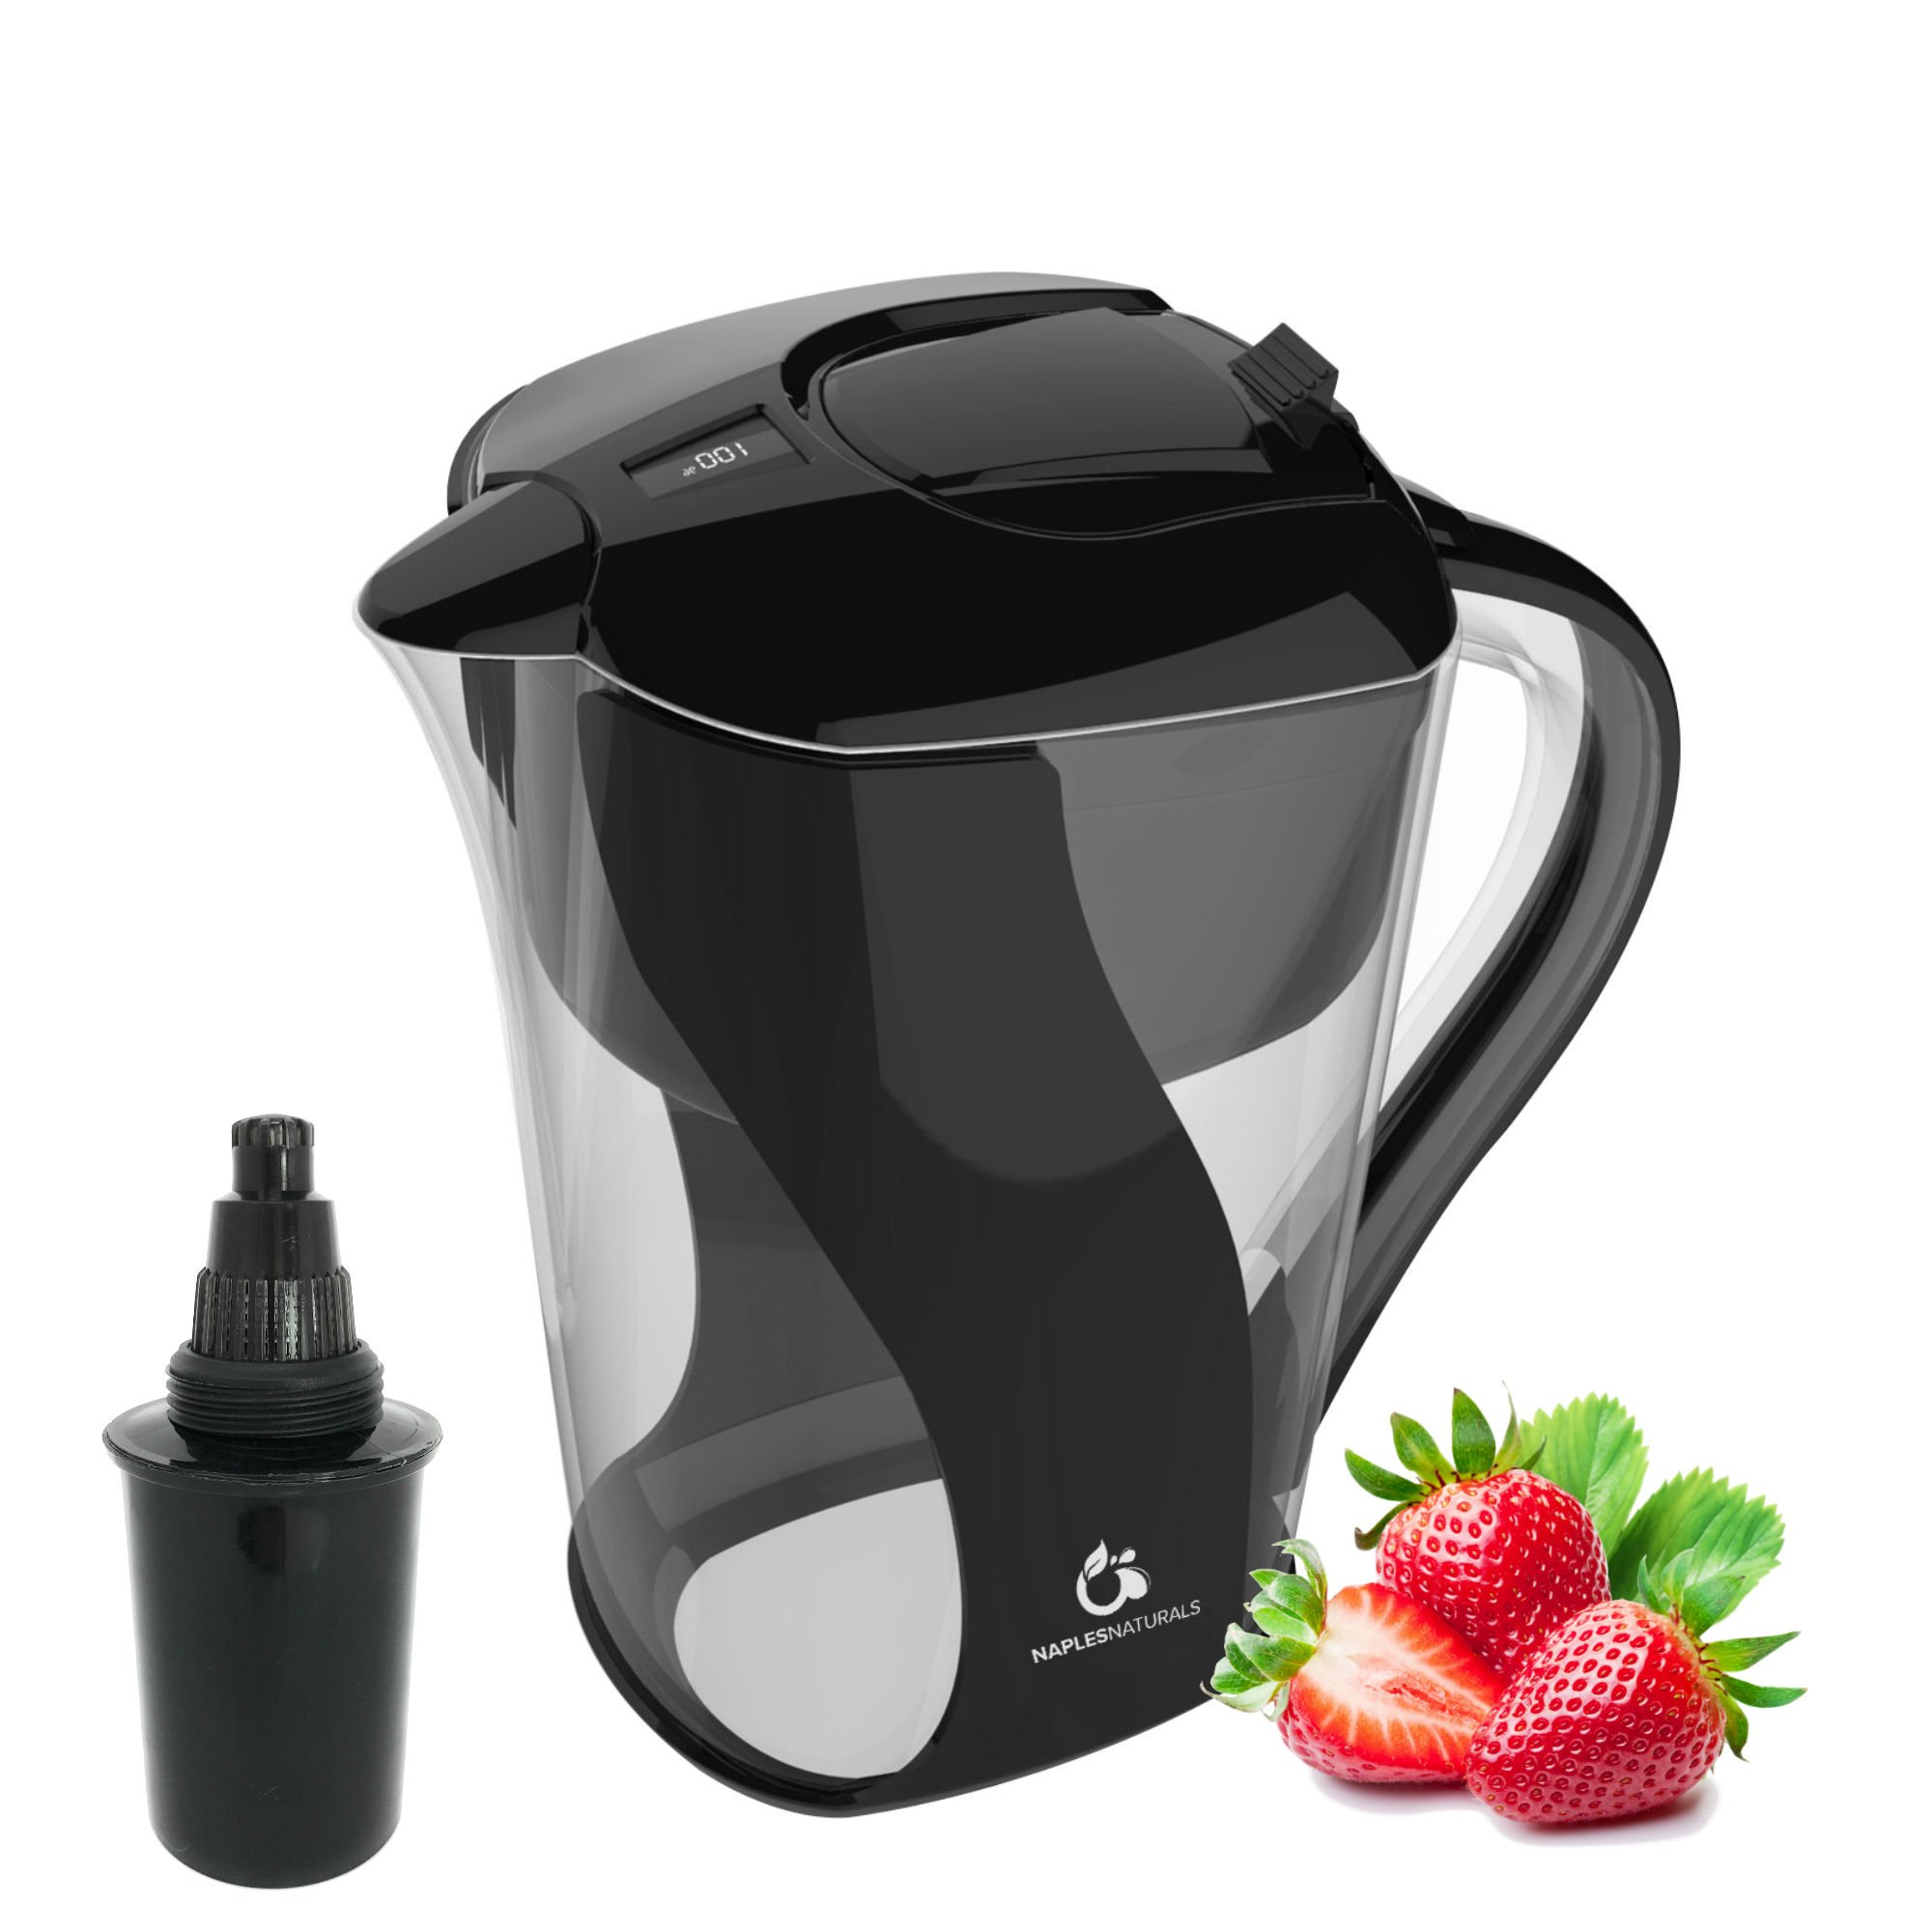 Naples Naturals 109X1 Alkaline Water Filter Pitcher - Removes Chlorine and Contaminants Plus Increases pH (Black), (Model: AOK109-BLK-01)